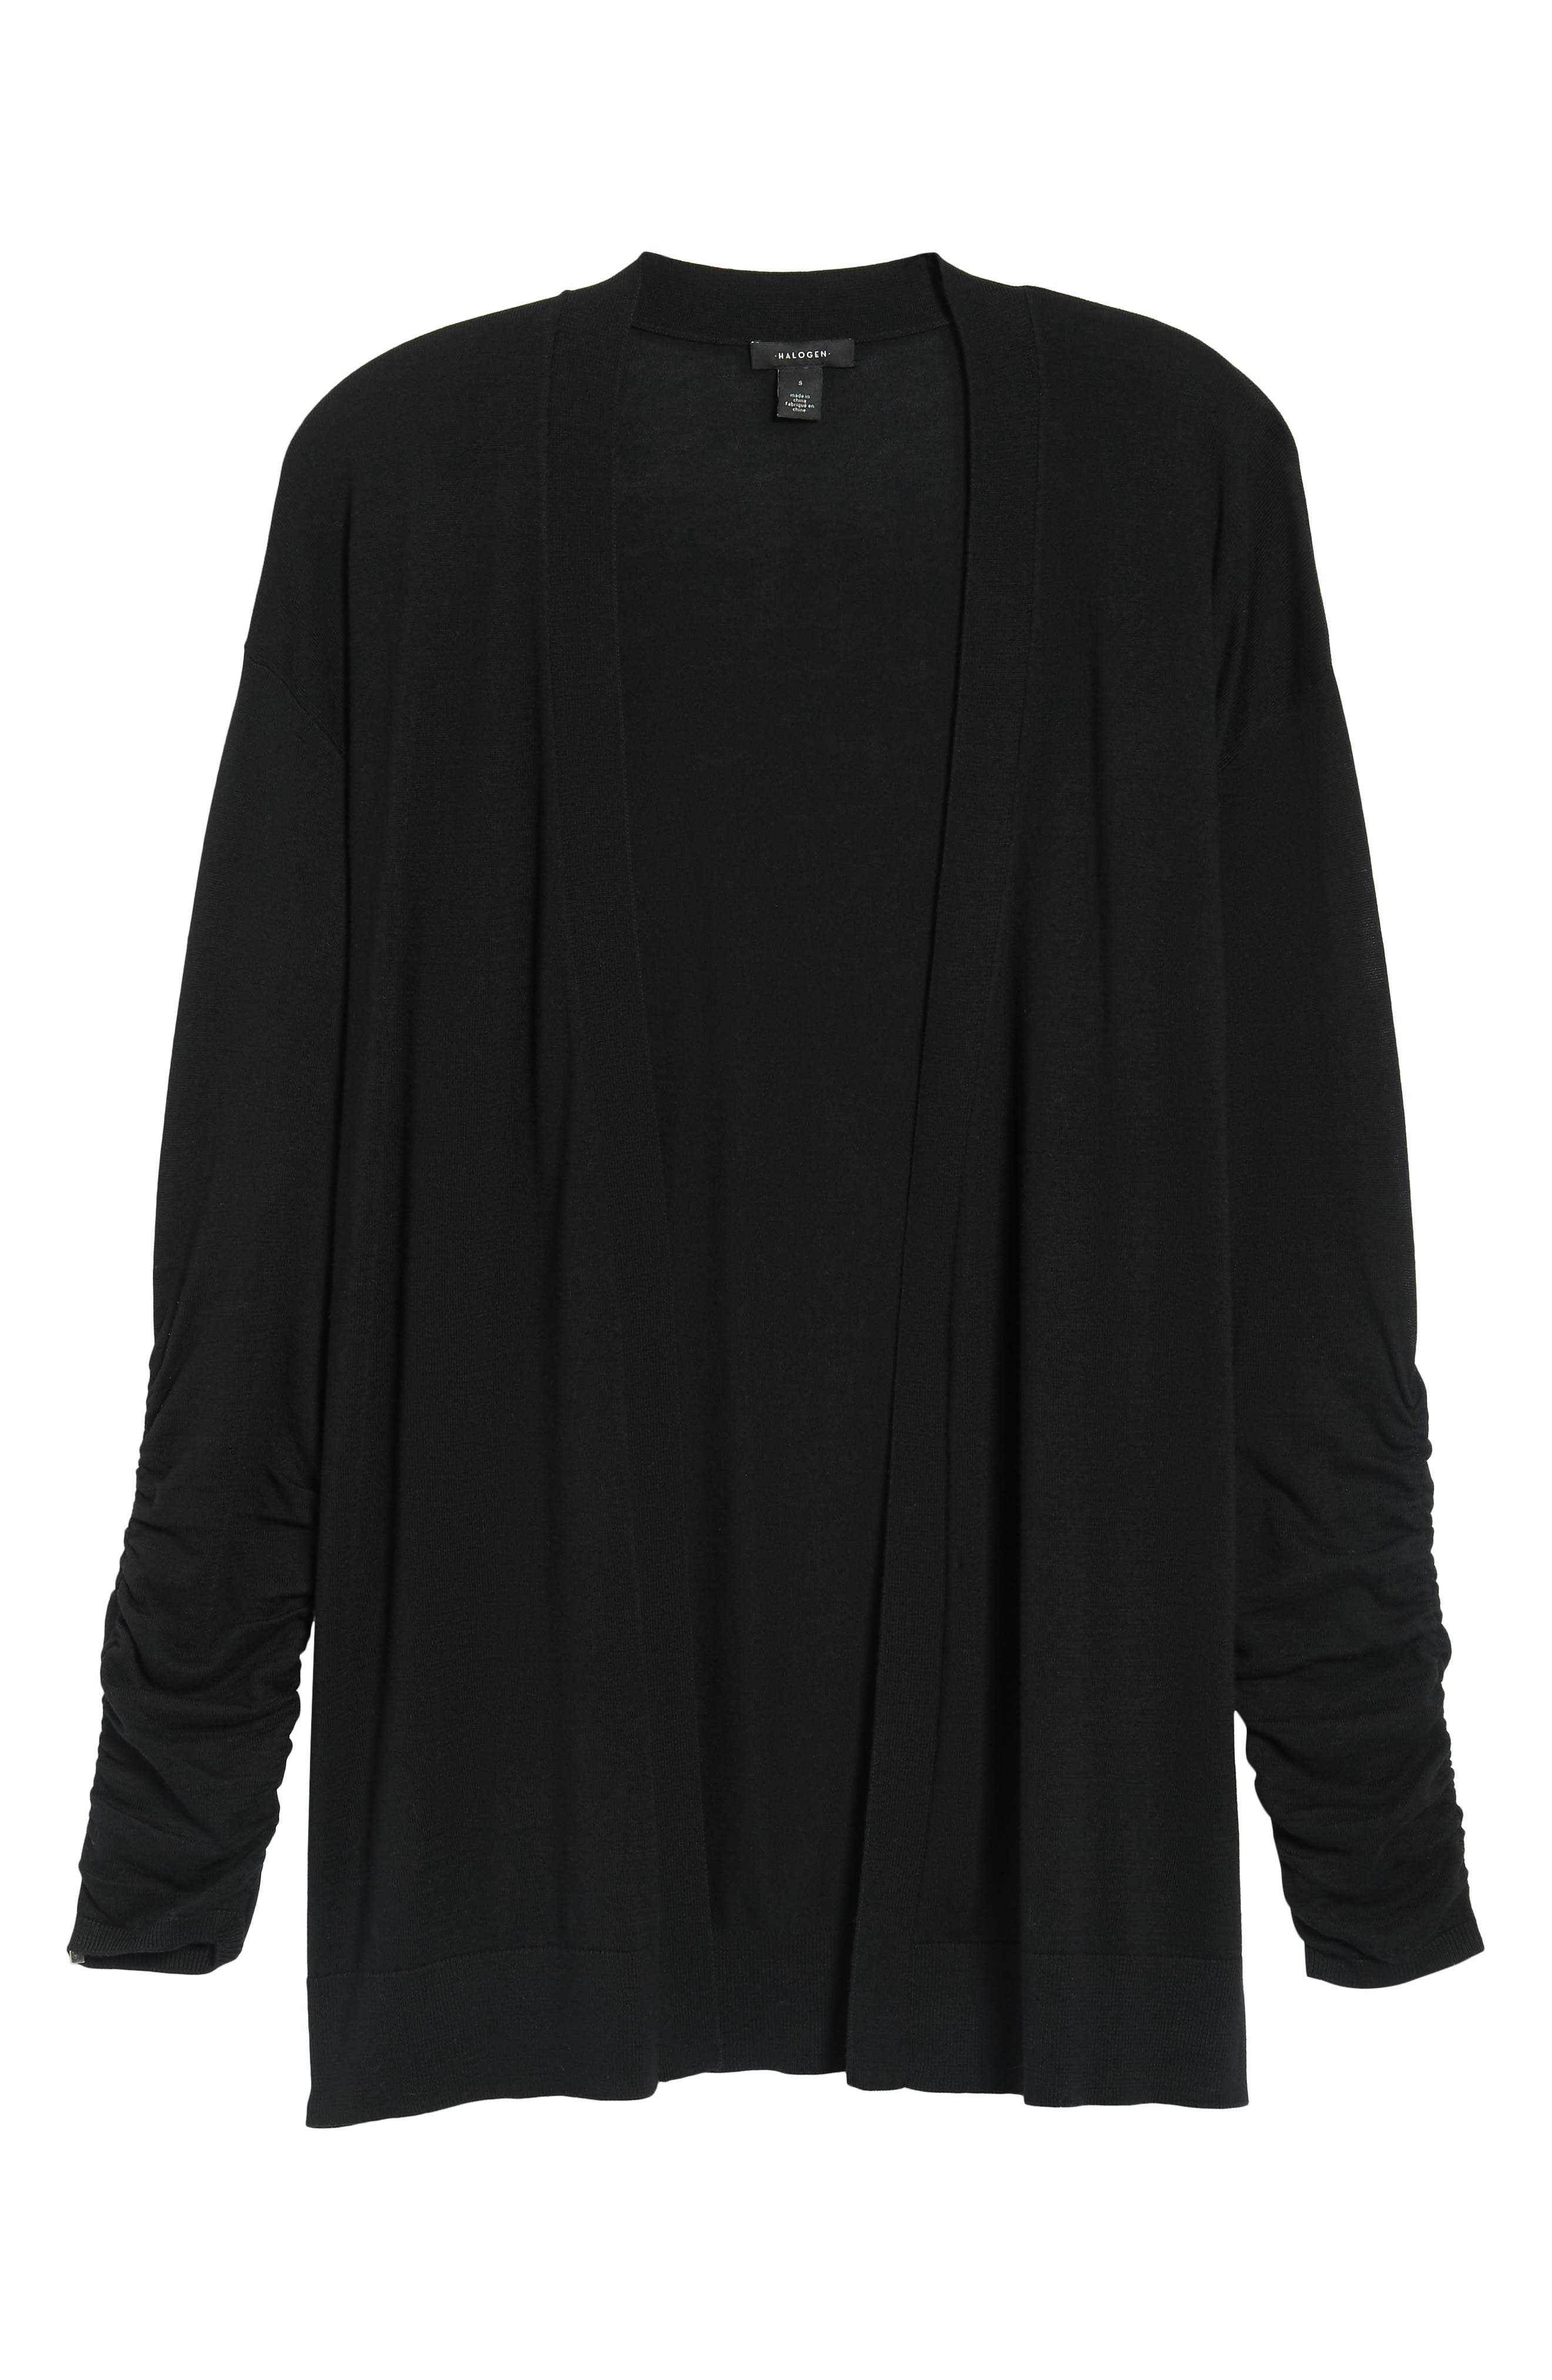 Ruched Sleeve Cardigan,                             Alternate thumbnail 7, color,                             001